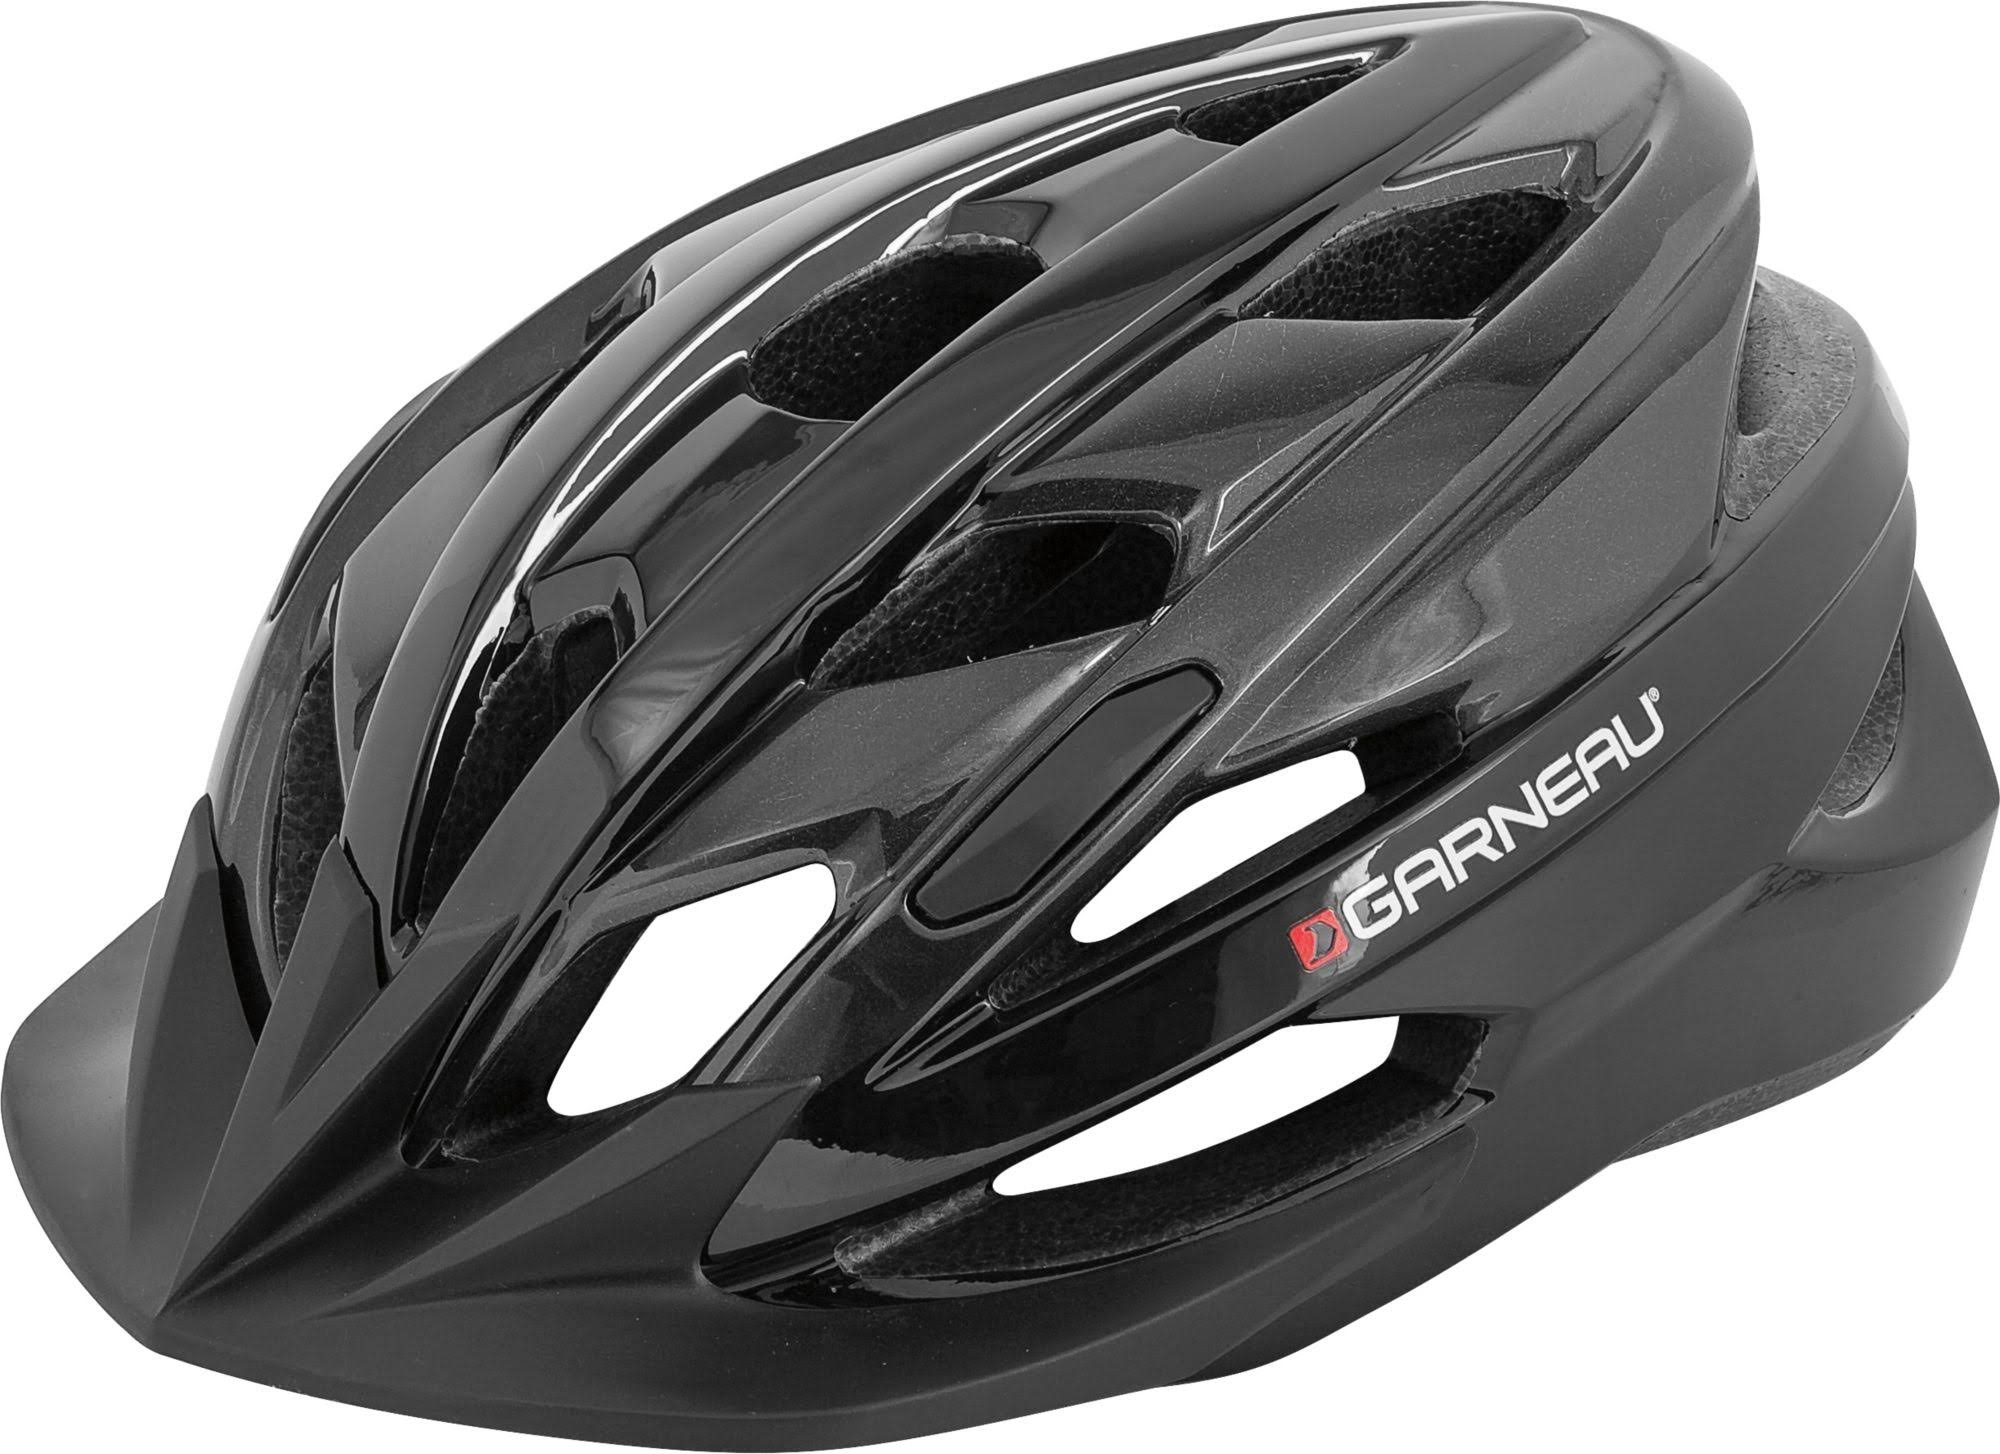 Louis Garneau HG Majestic Cycling Helmet - Black and Gray